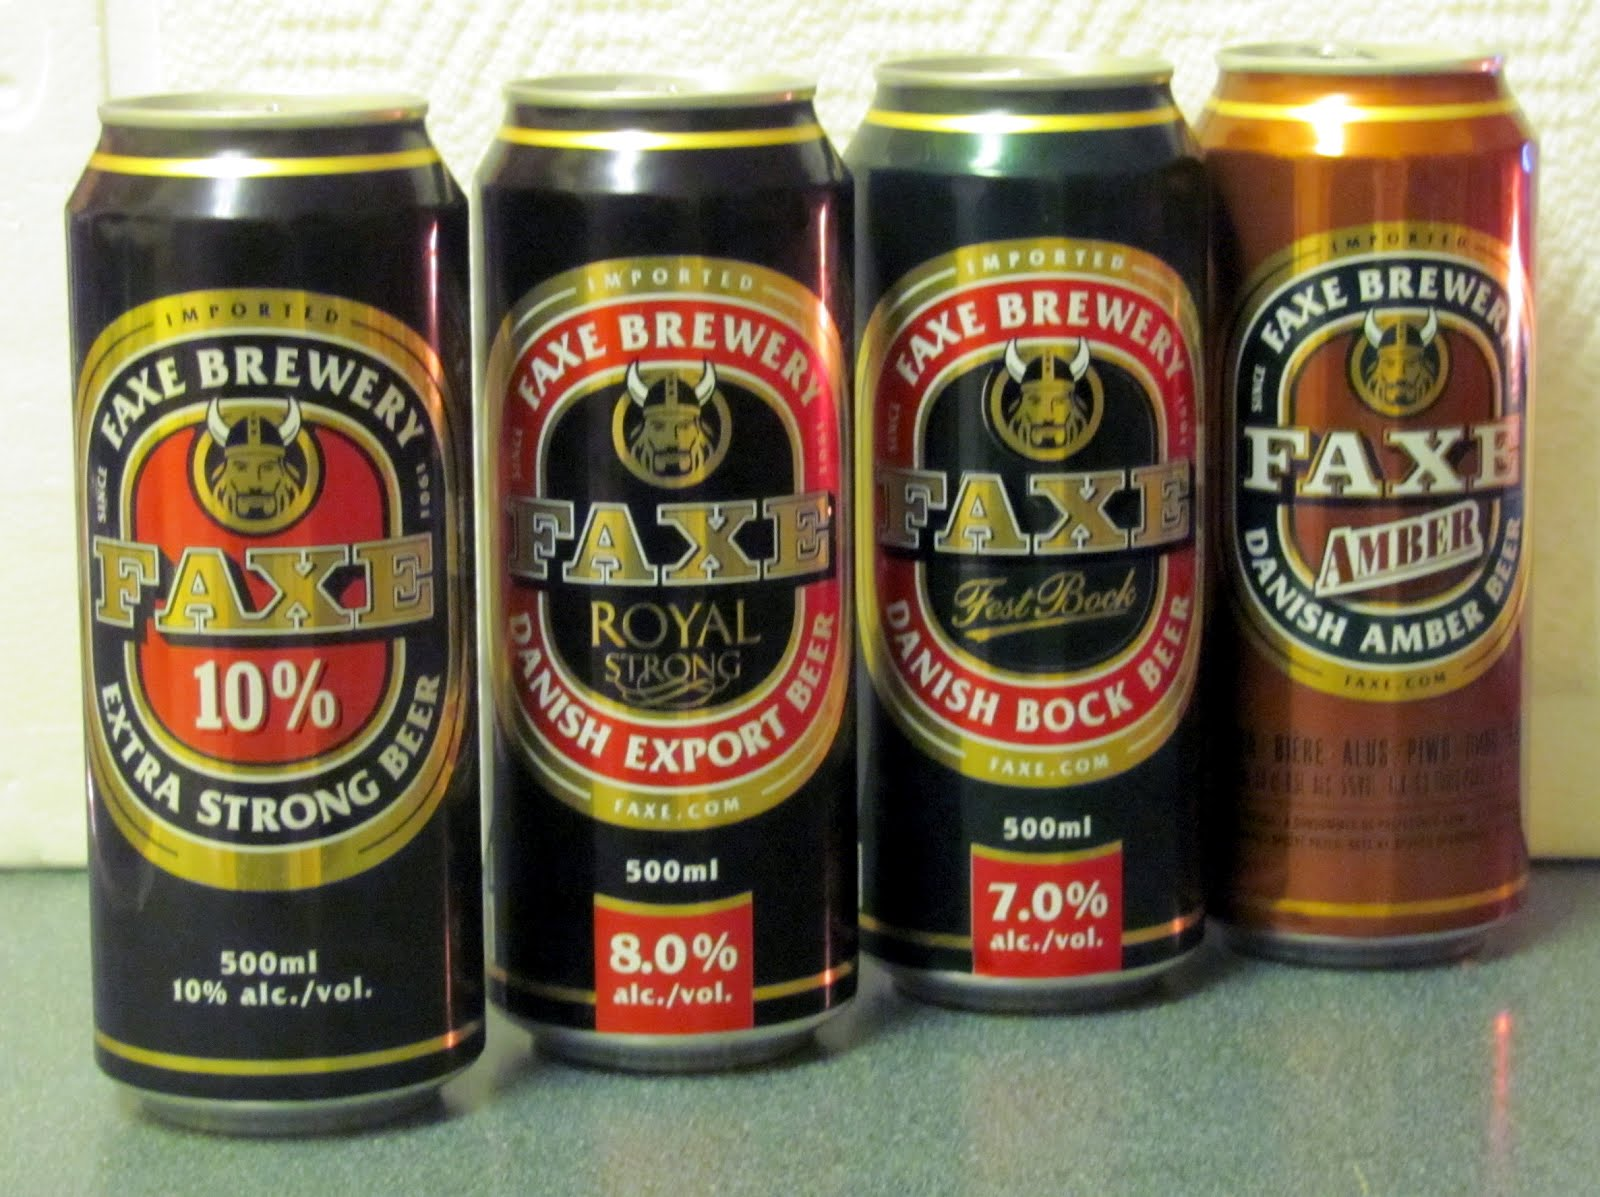 The World of Gord: Beer of the Week - The Beers of Faxe Brewery